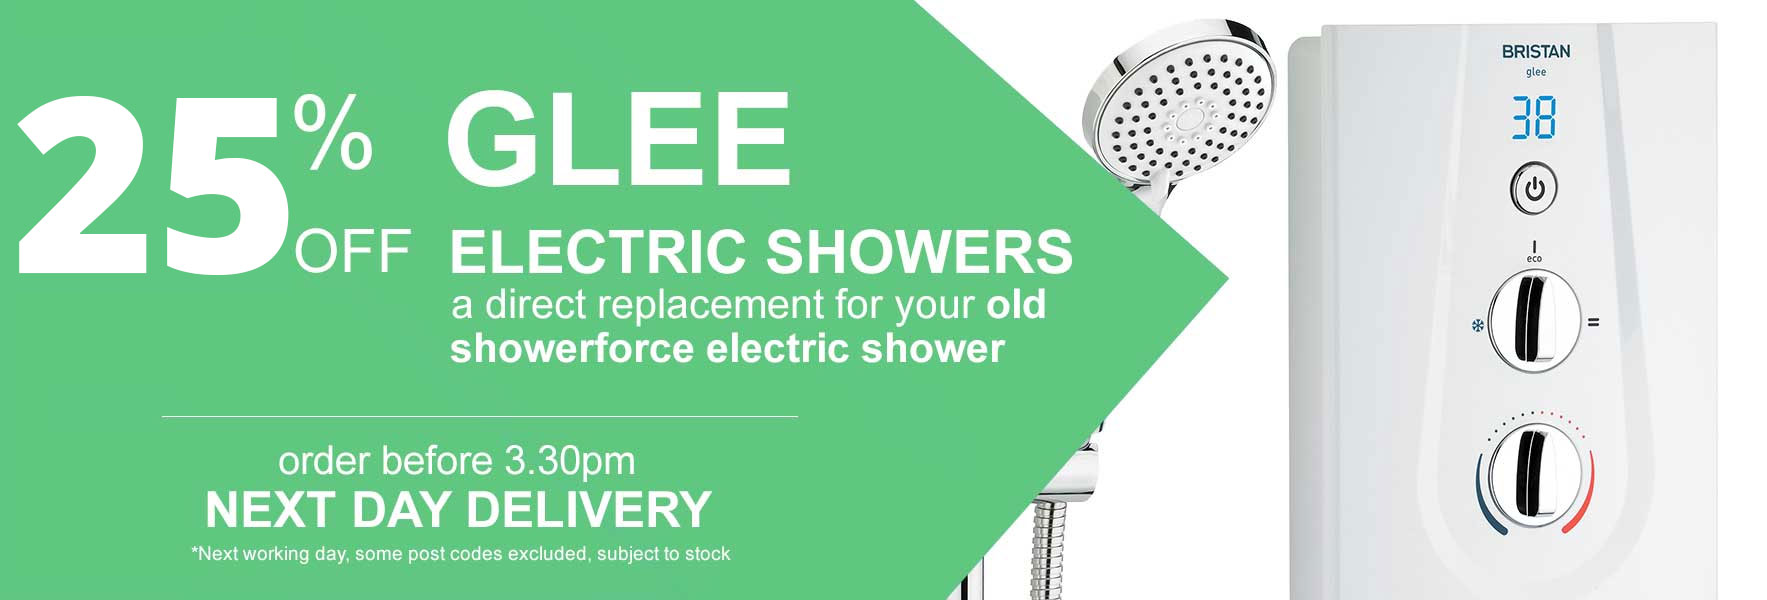 Glee Electric Showers